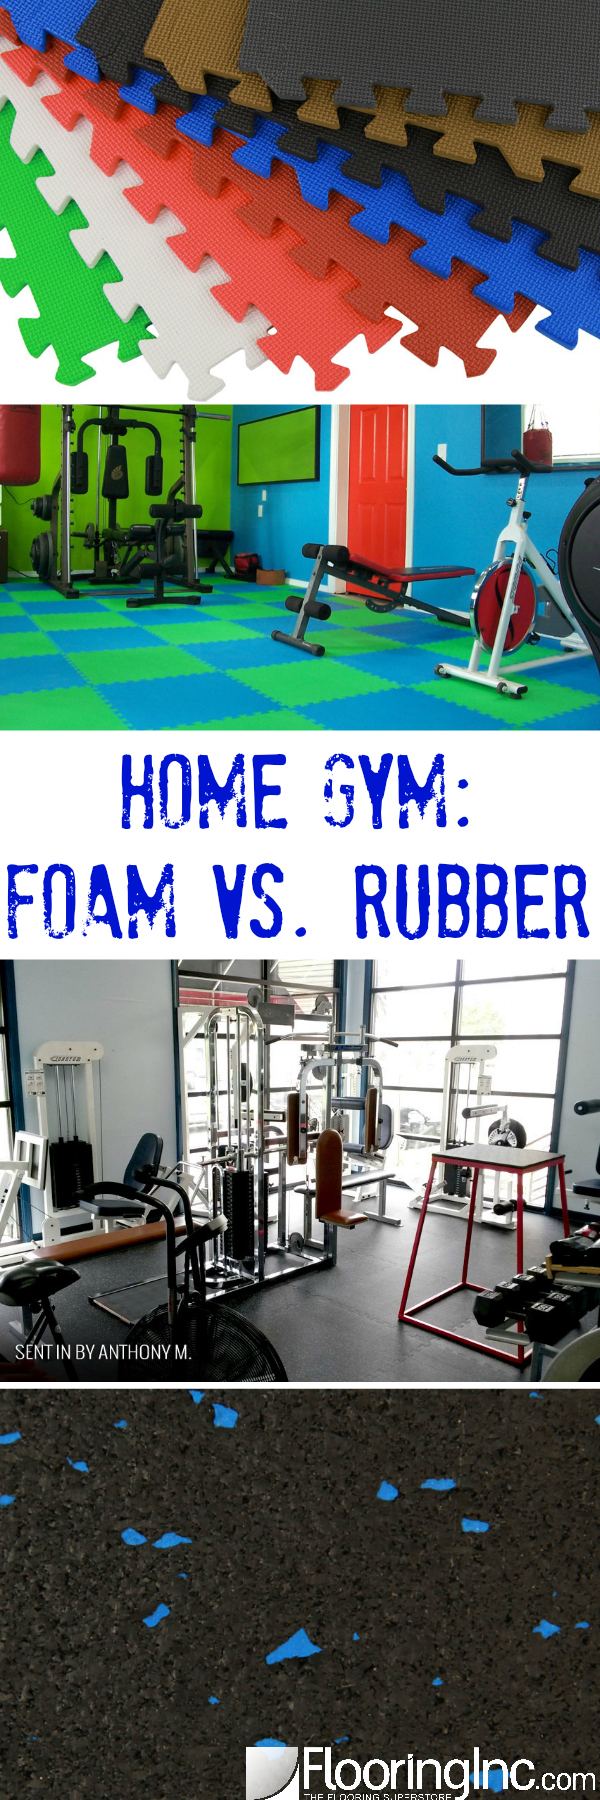 Home Gym Foam Vs Rubber Everything You Need To Choose The Right Floor For